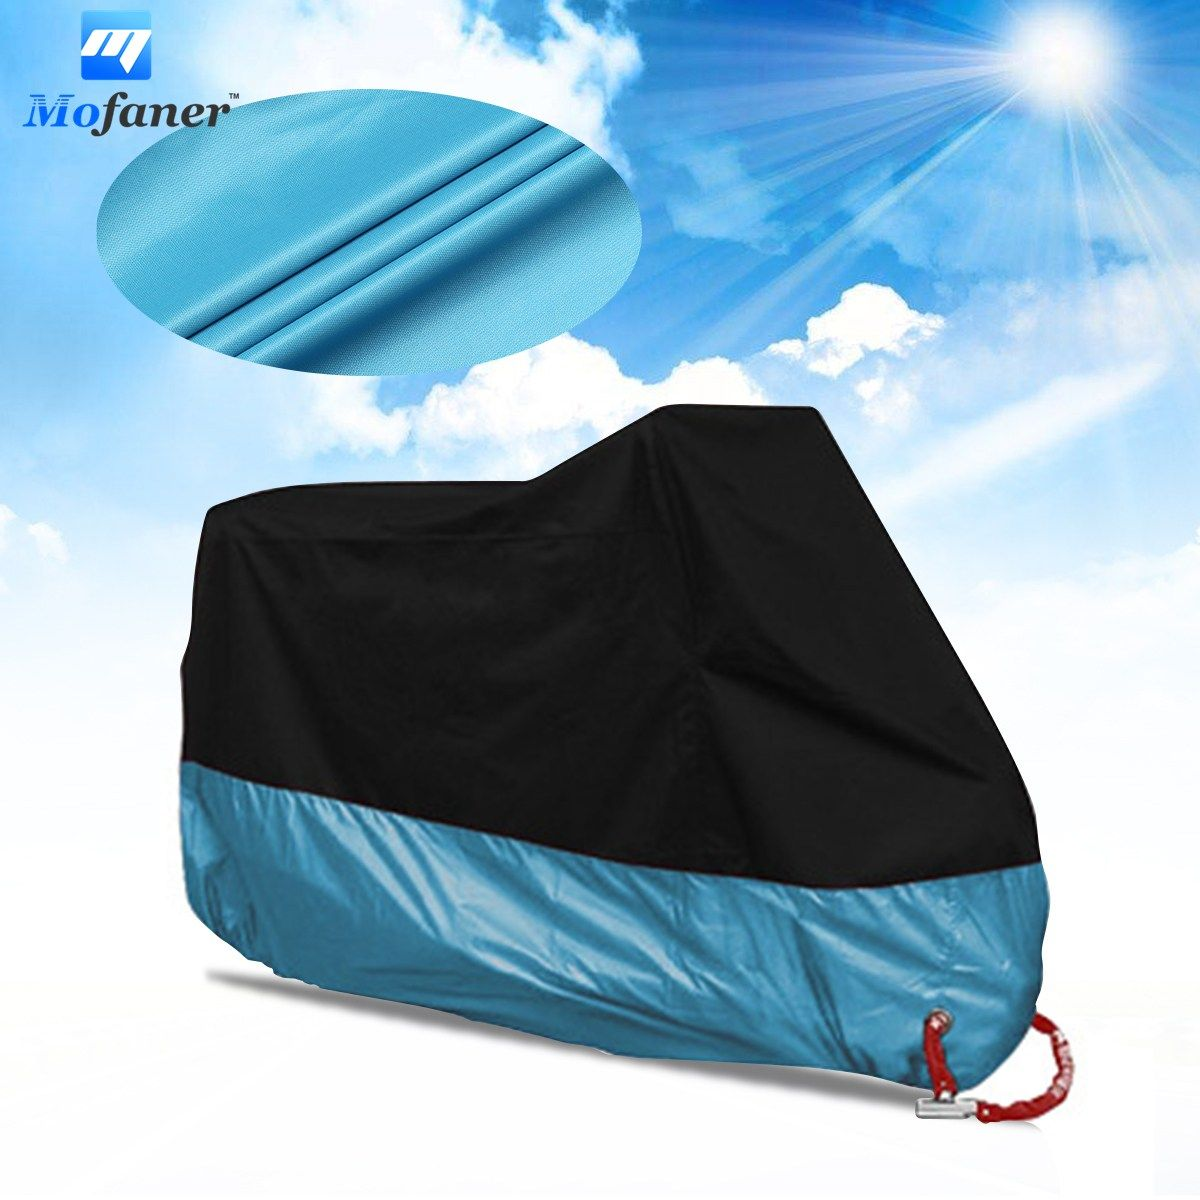 Mofaner 190T Universal Motorcycle Cover UV Protector Waterproof Rain Dustproof Anti-theft Motor Scooter Covers With Lock Holes